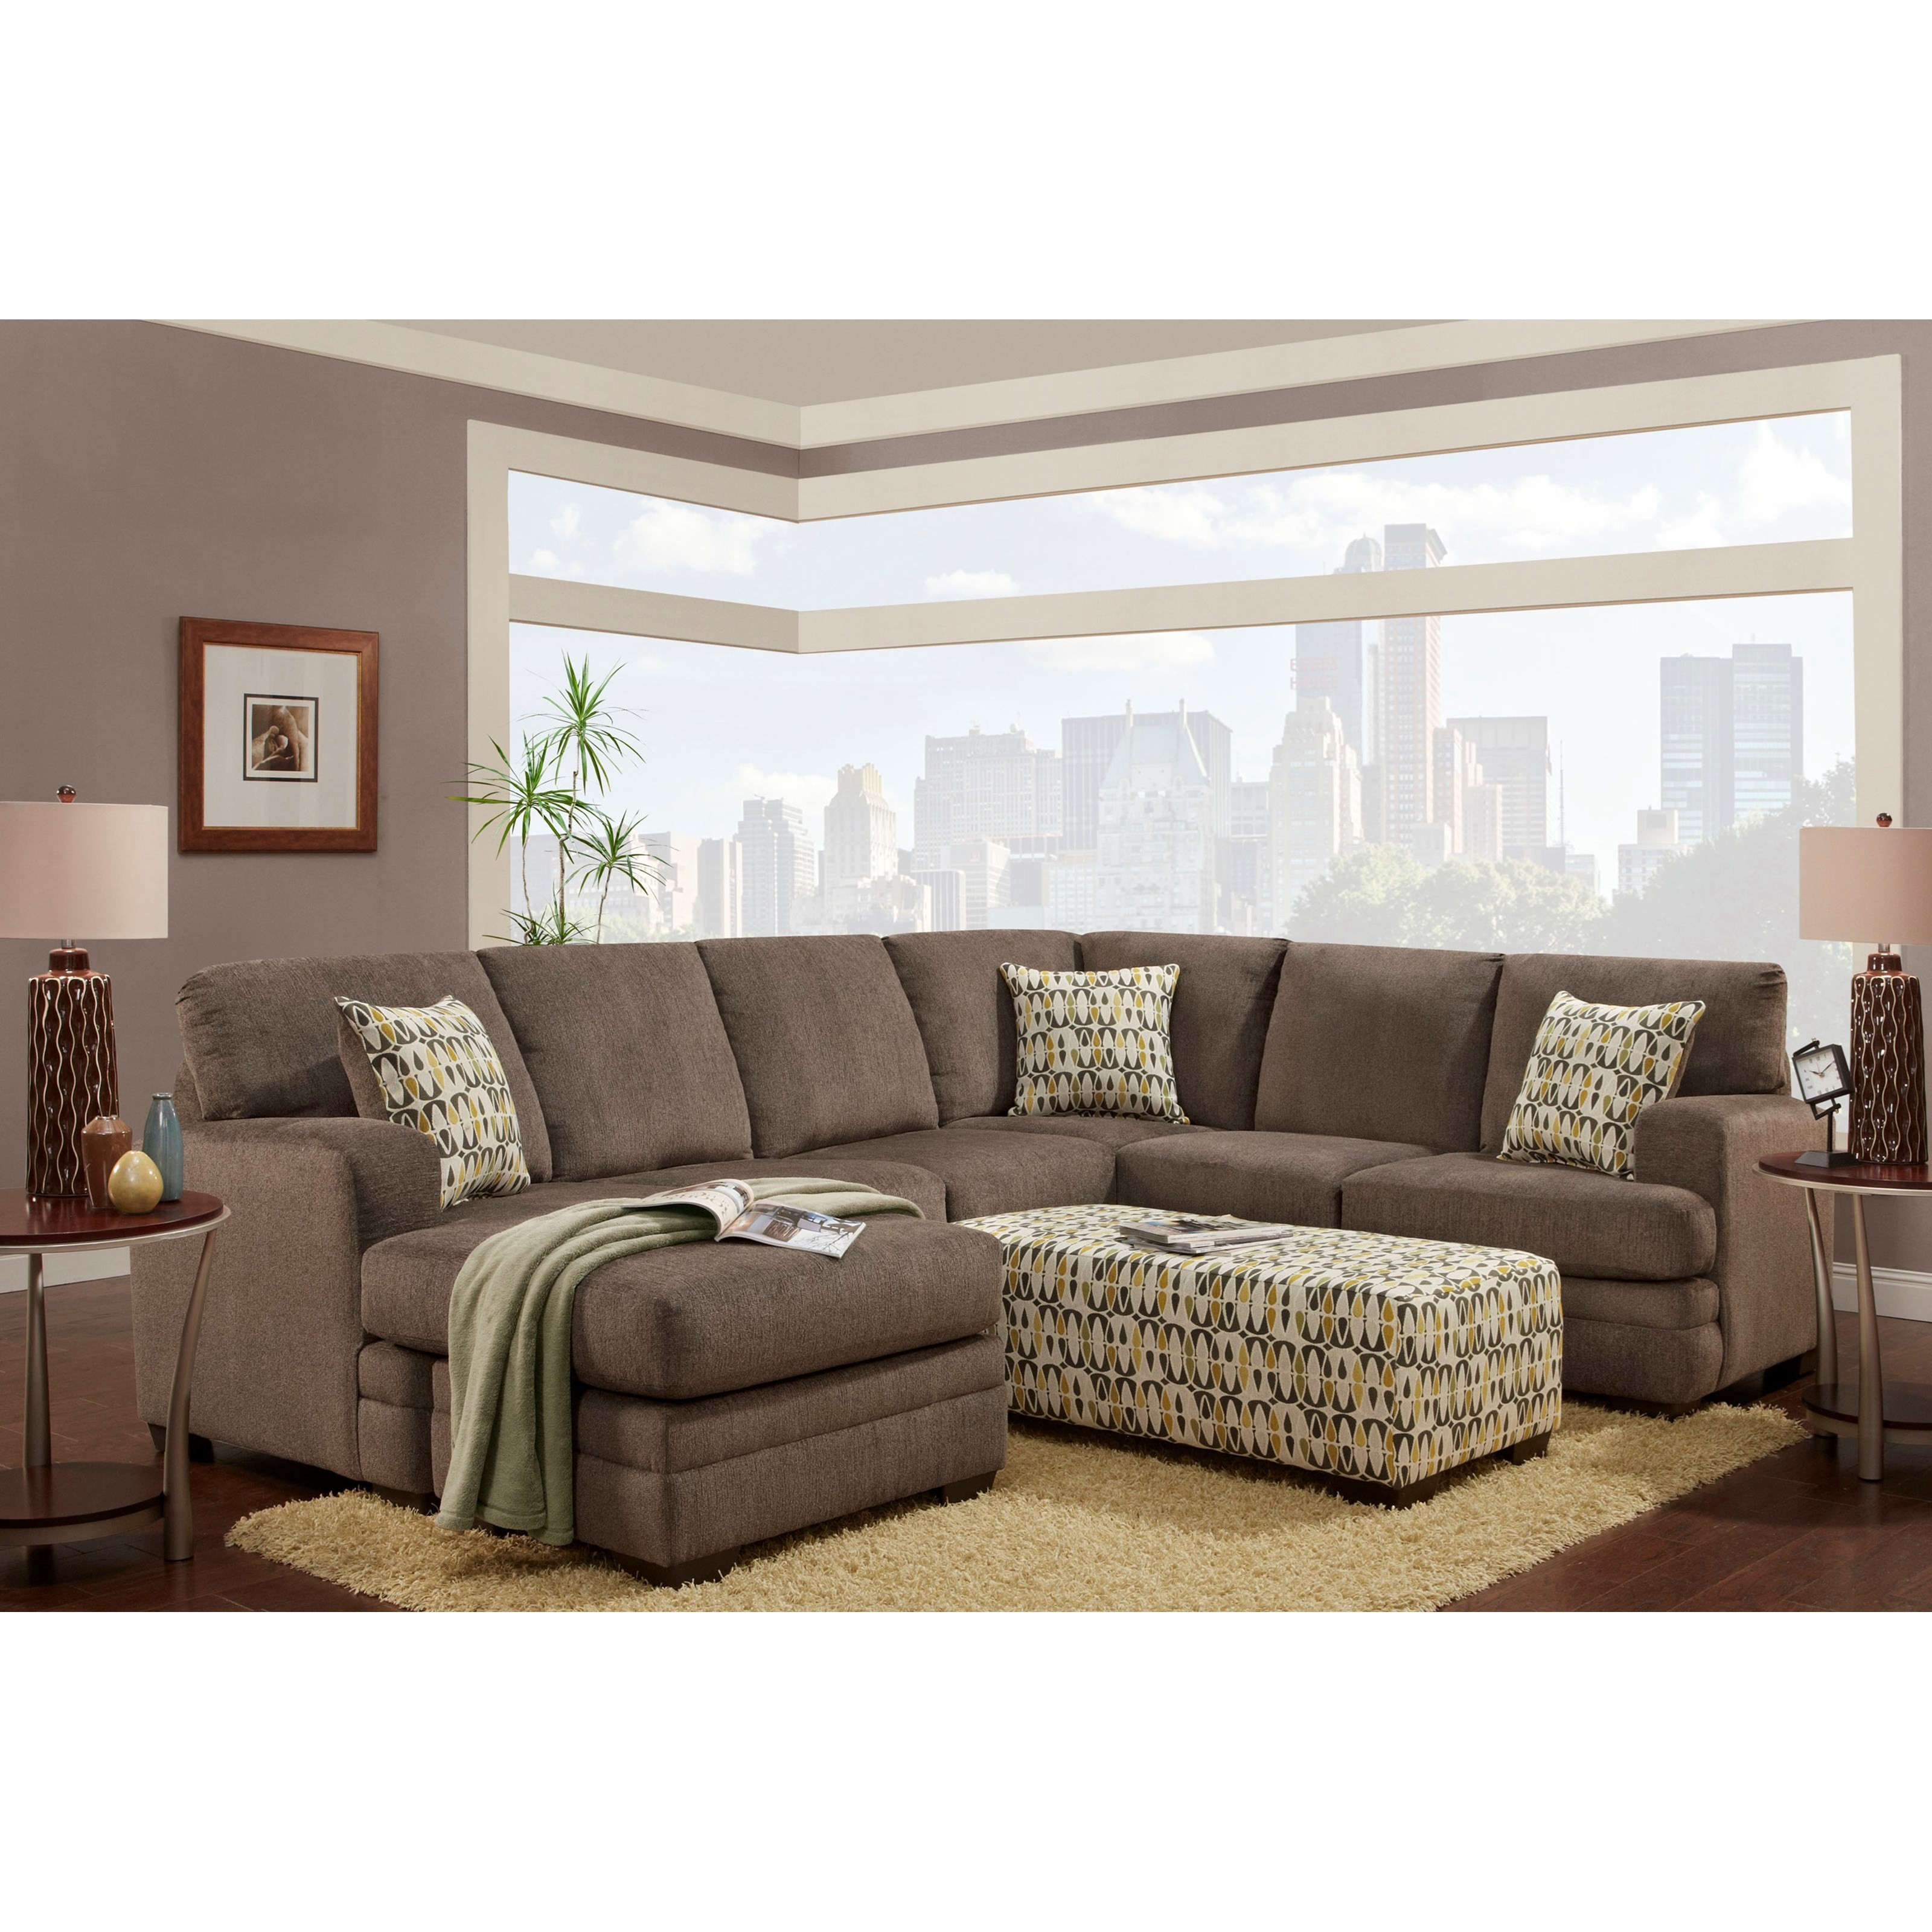 Sectional sofas in phoenix az refil sofa for Furniture 85050